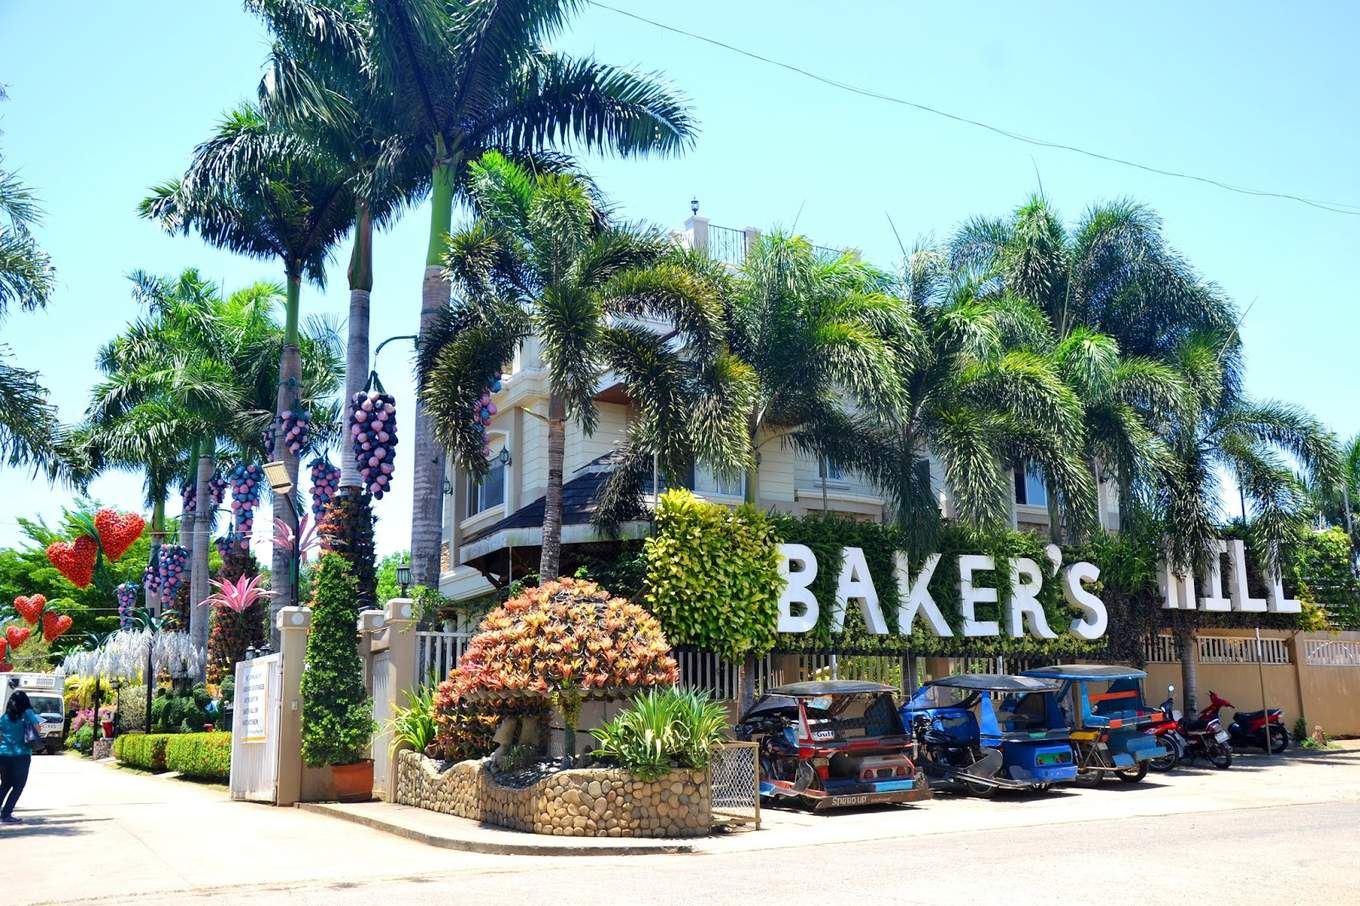 圖片取自https://nicerioadventures.blogspot.com/2018/02/palawan-bakers-hill.html